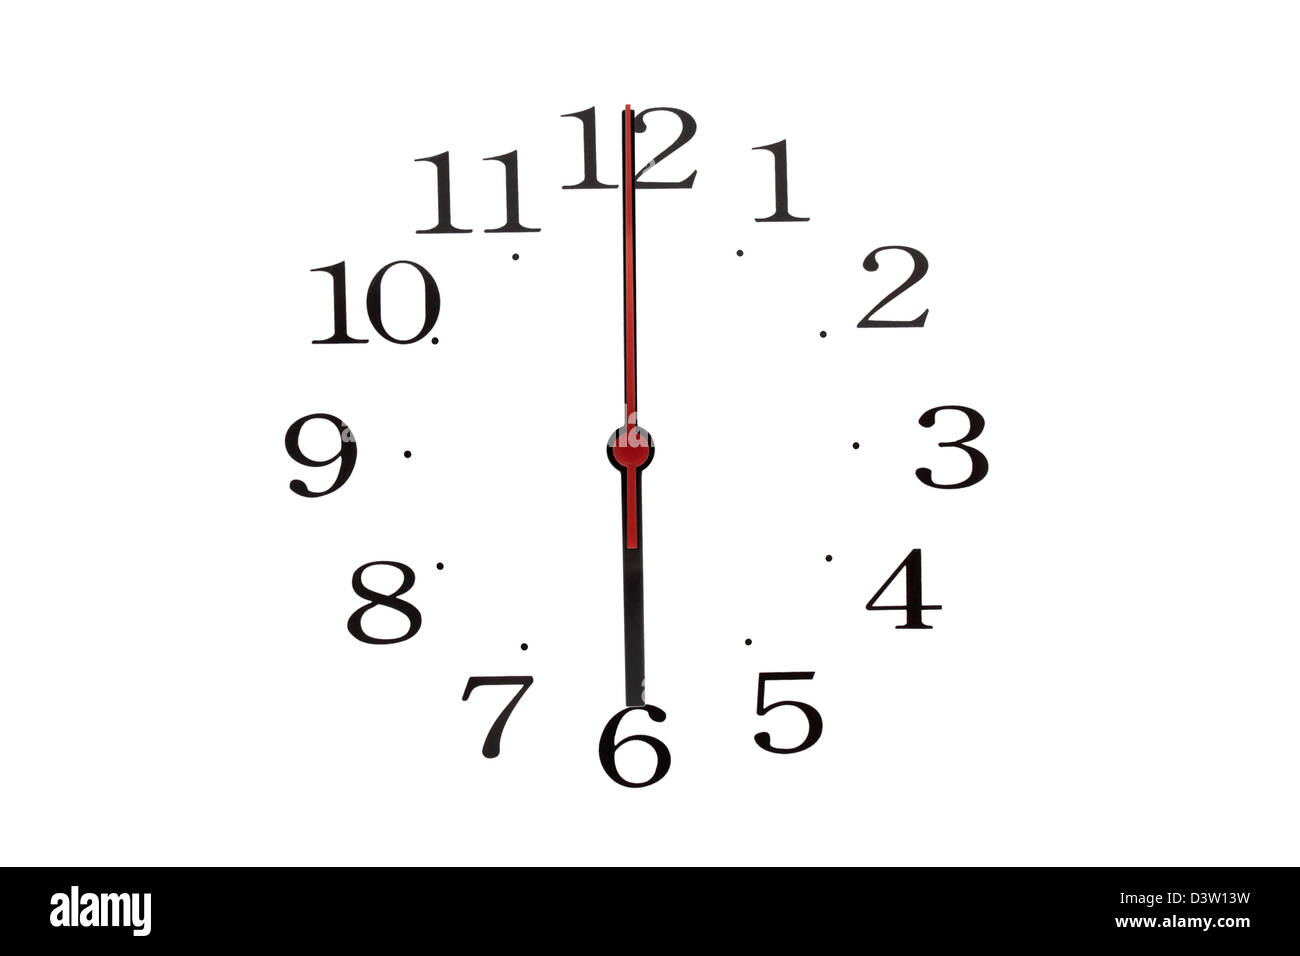 Just the hands and numbers from a clock reading 06:00 - Stock Image